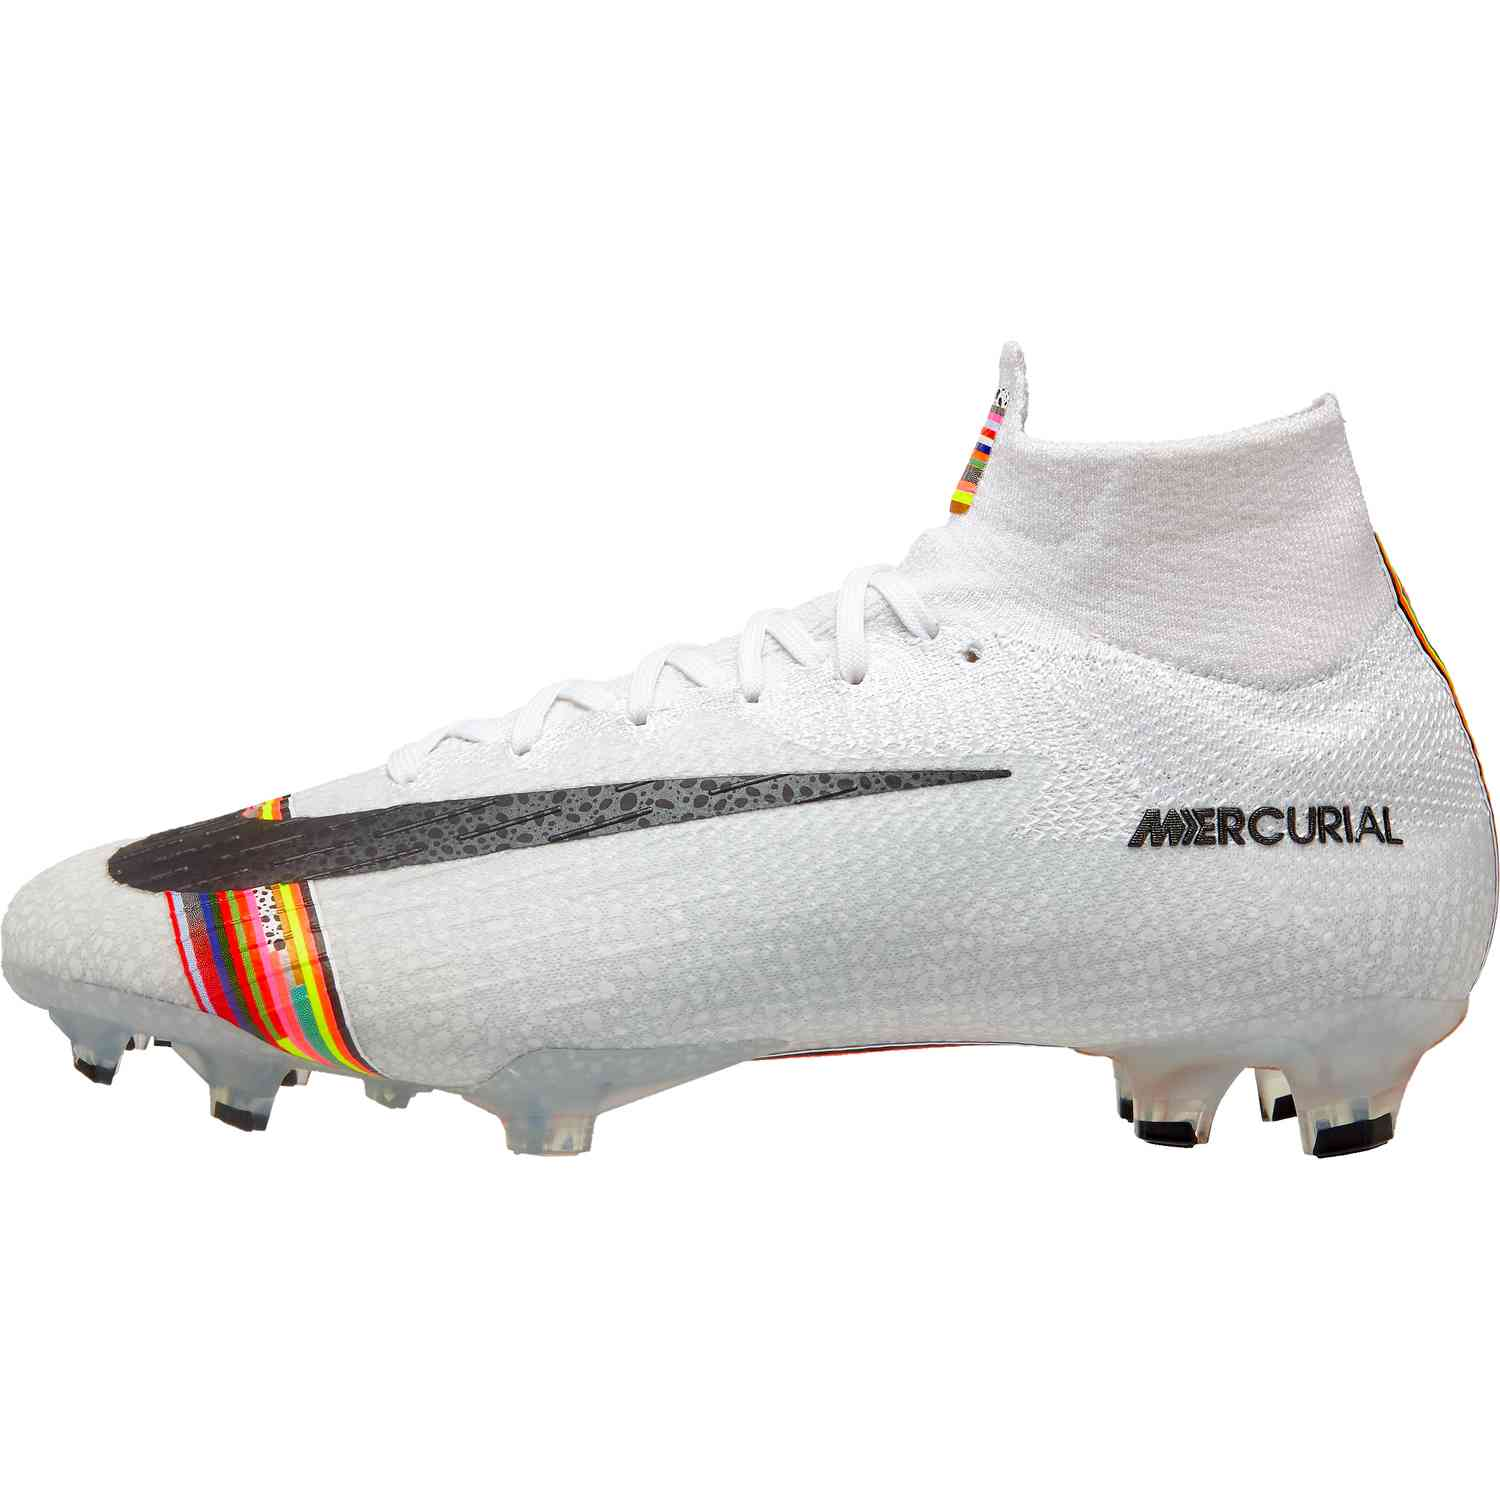 Nike Mercurial Superfly 360 Elite SE FG - Level Up - SoccerPro